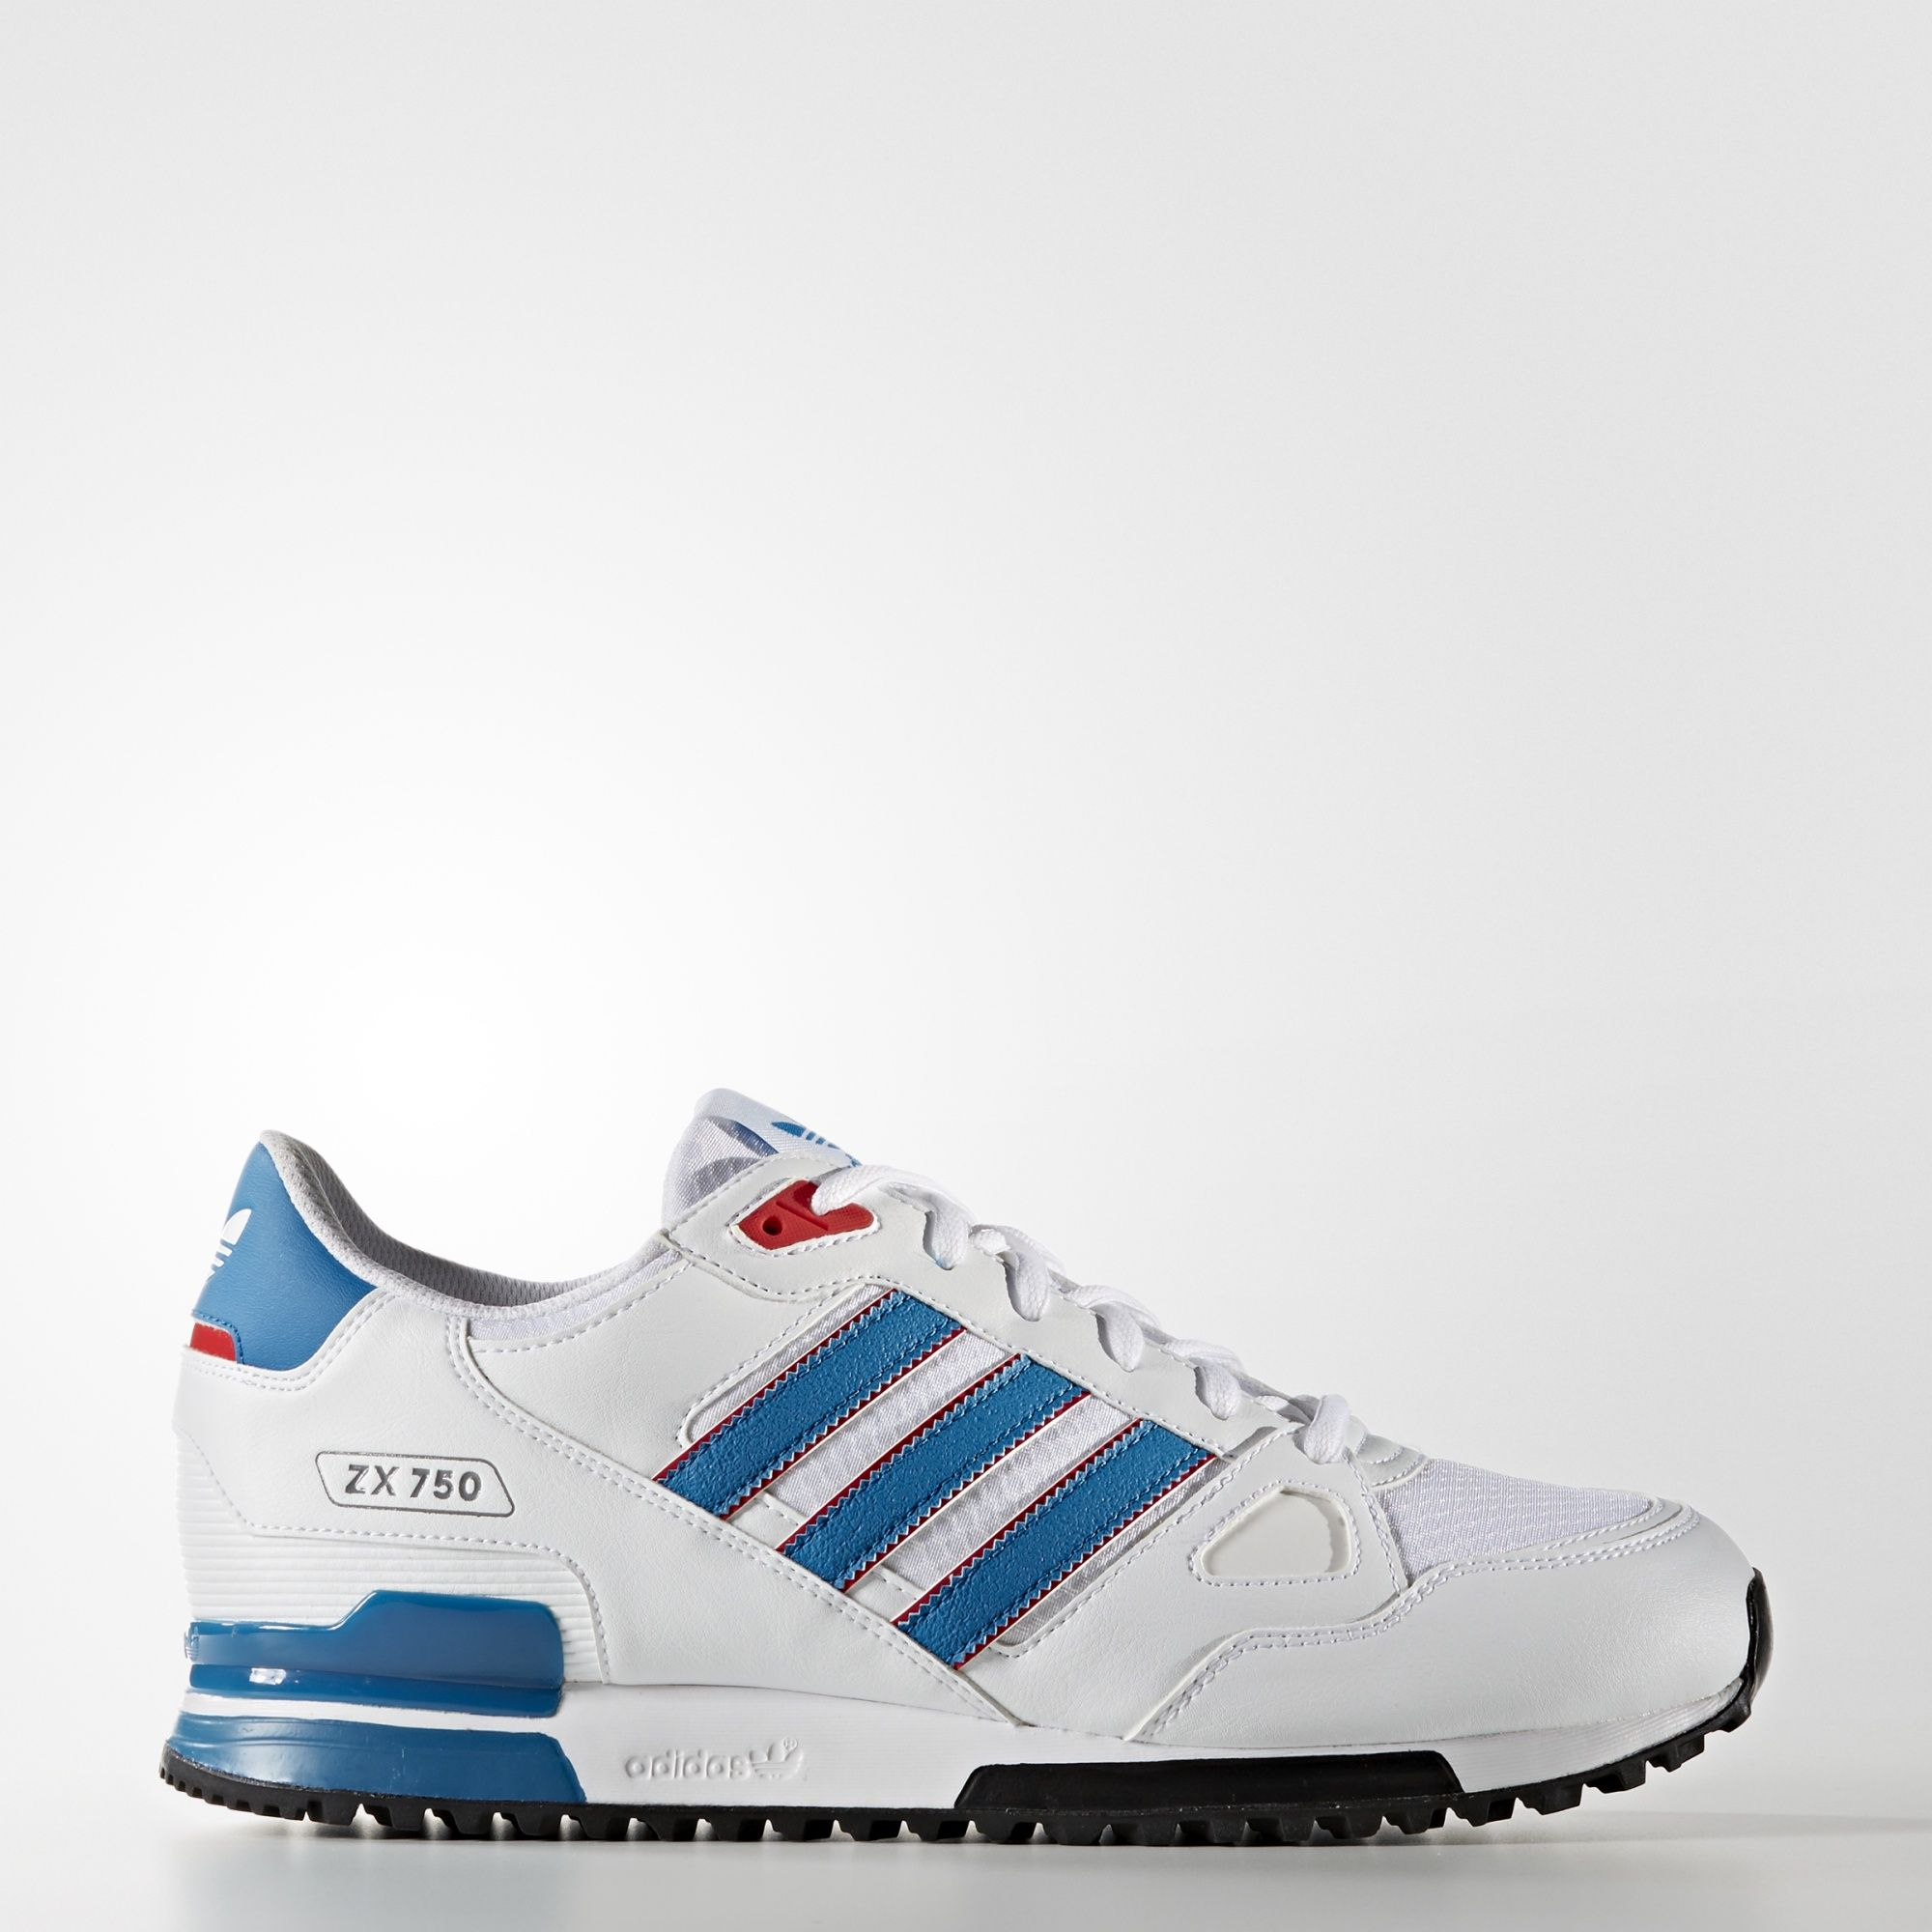 differently 350cc 6cc59 adidas ZX 750 (White Blue Red)   Adidas in 2019   Adidas ZX, Sneakers,  Sneakers nike